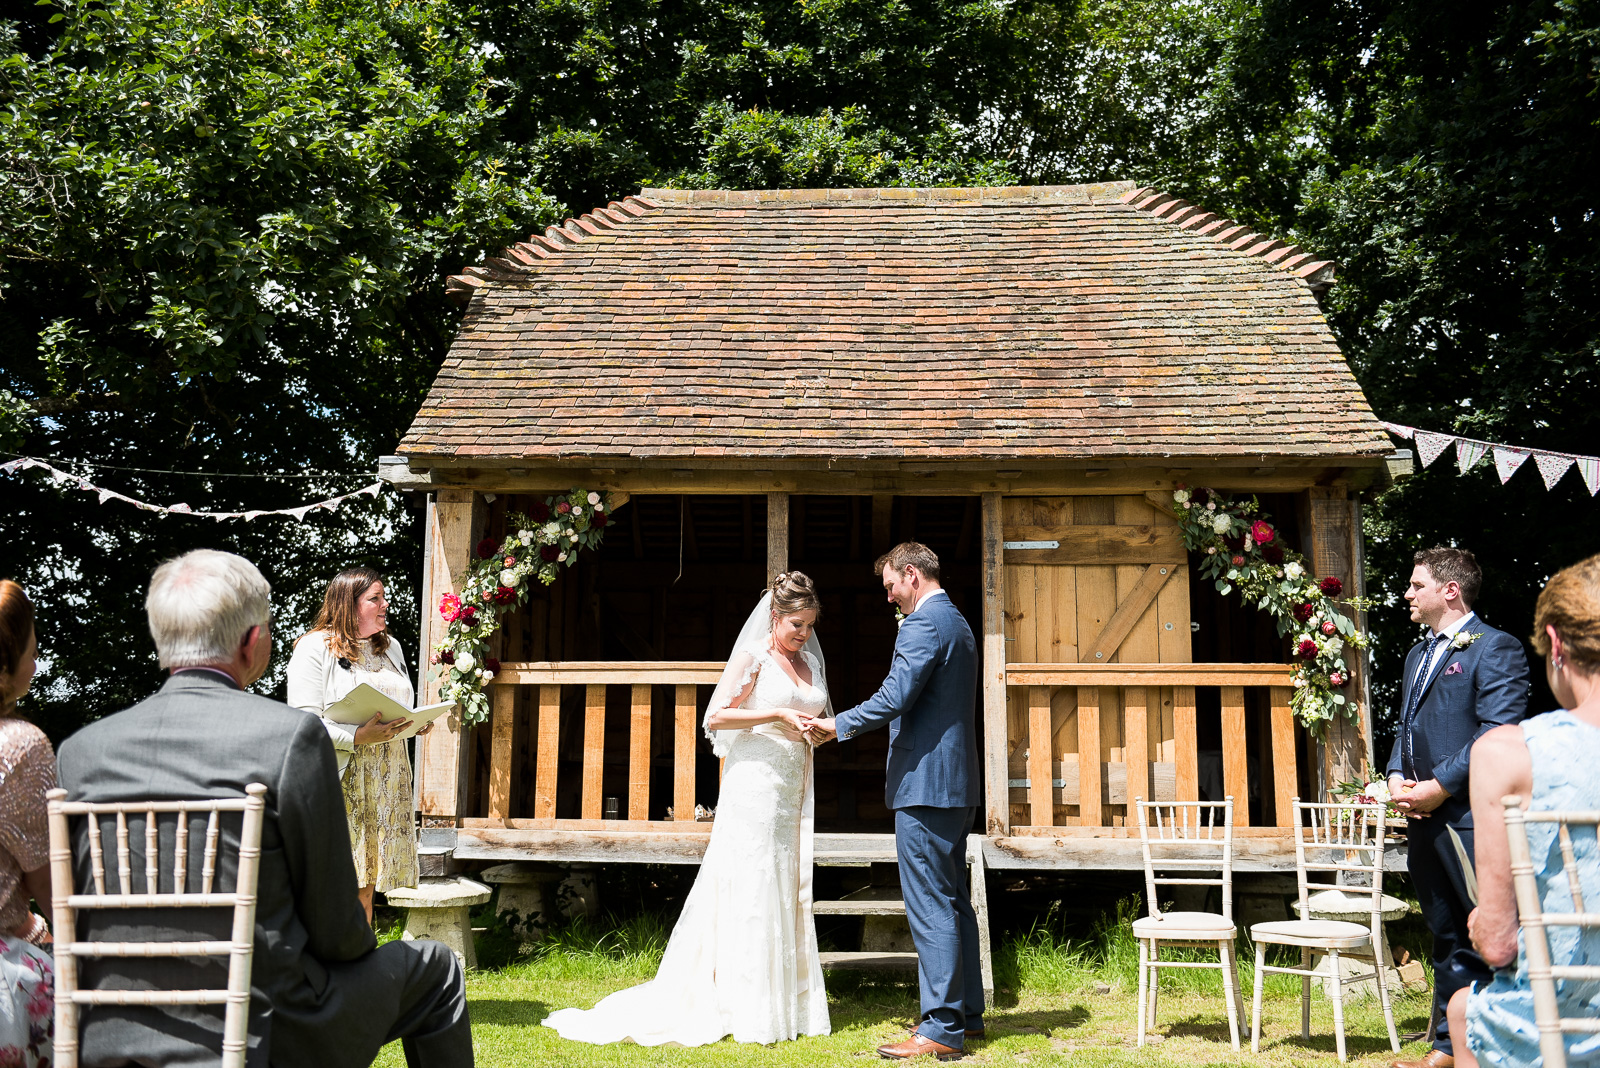 Outdoor rustic wedding ceremony hosted by wedding celebrant